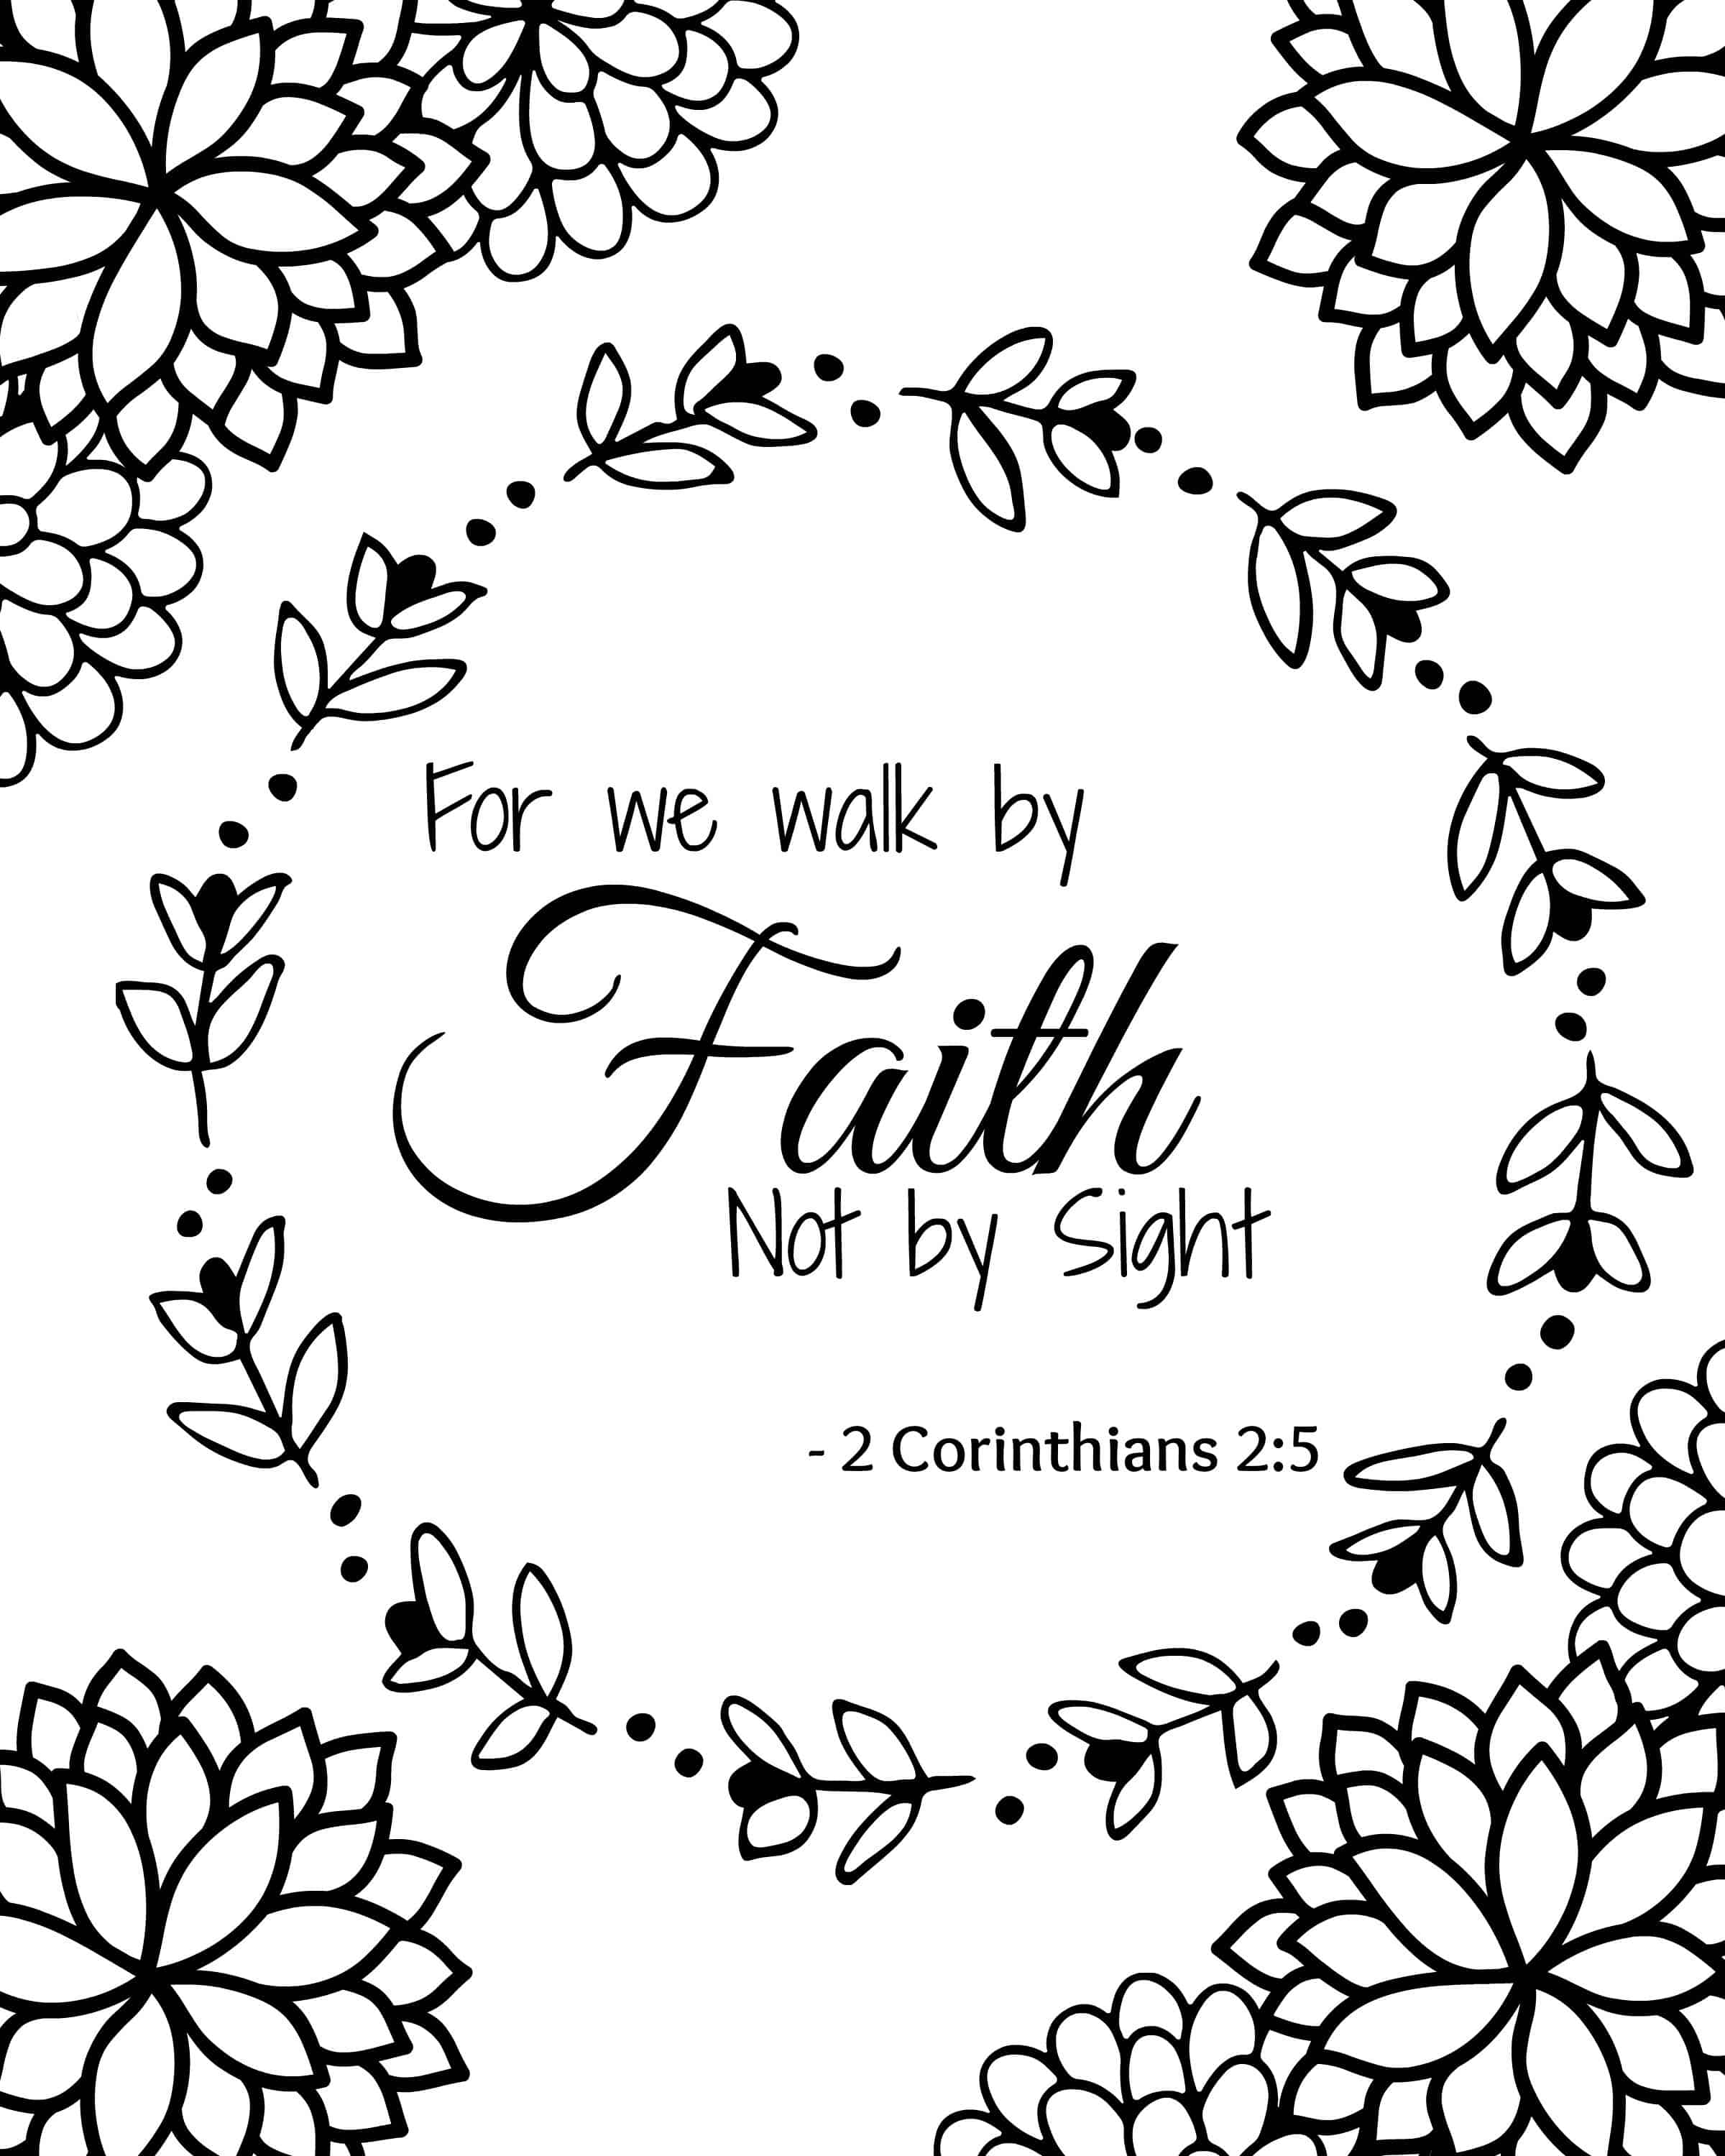 free christian coloring sheets beautiful christian coloring pages with bible verses top coloring sheets free christian